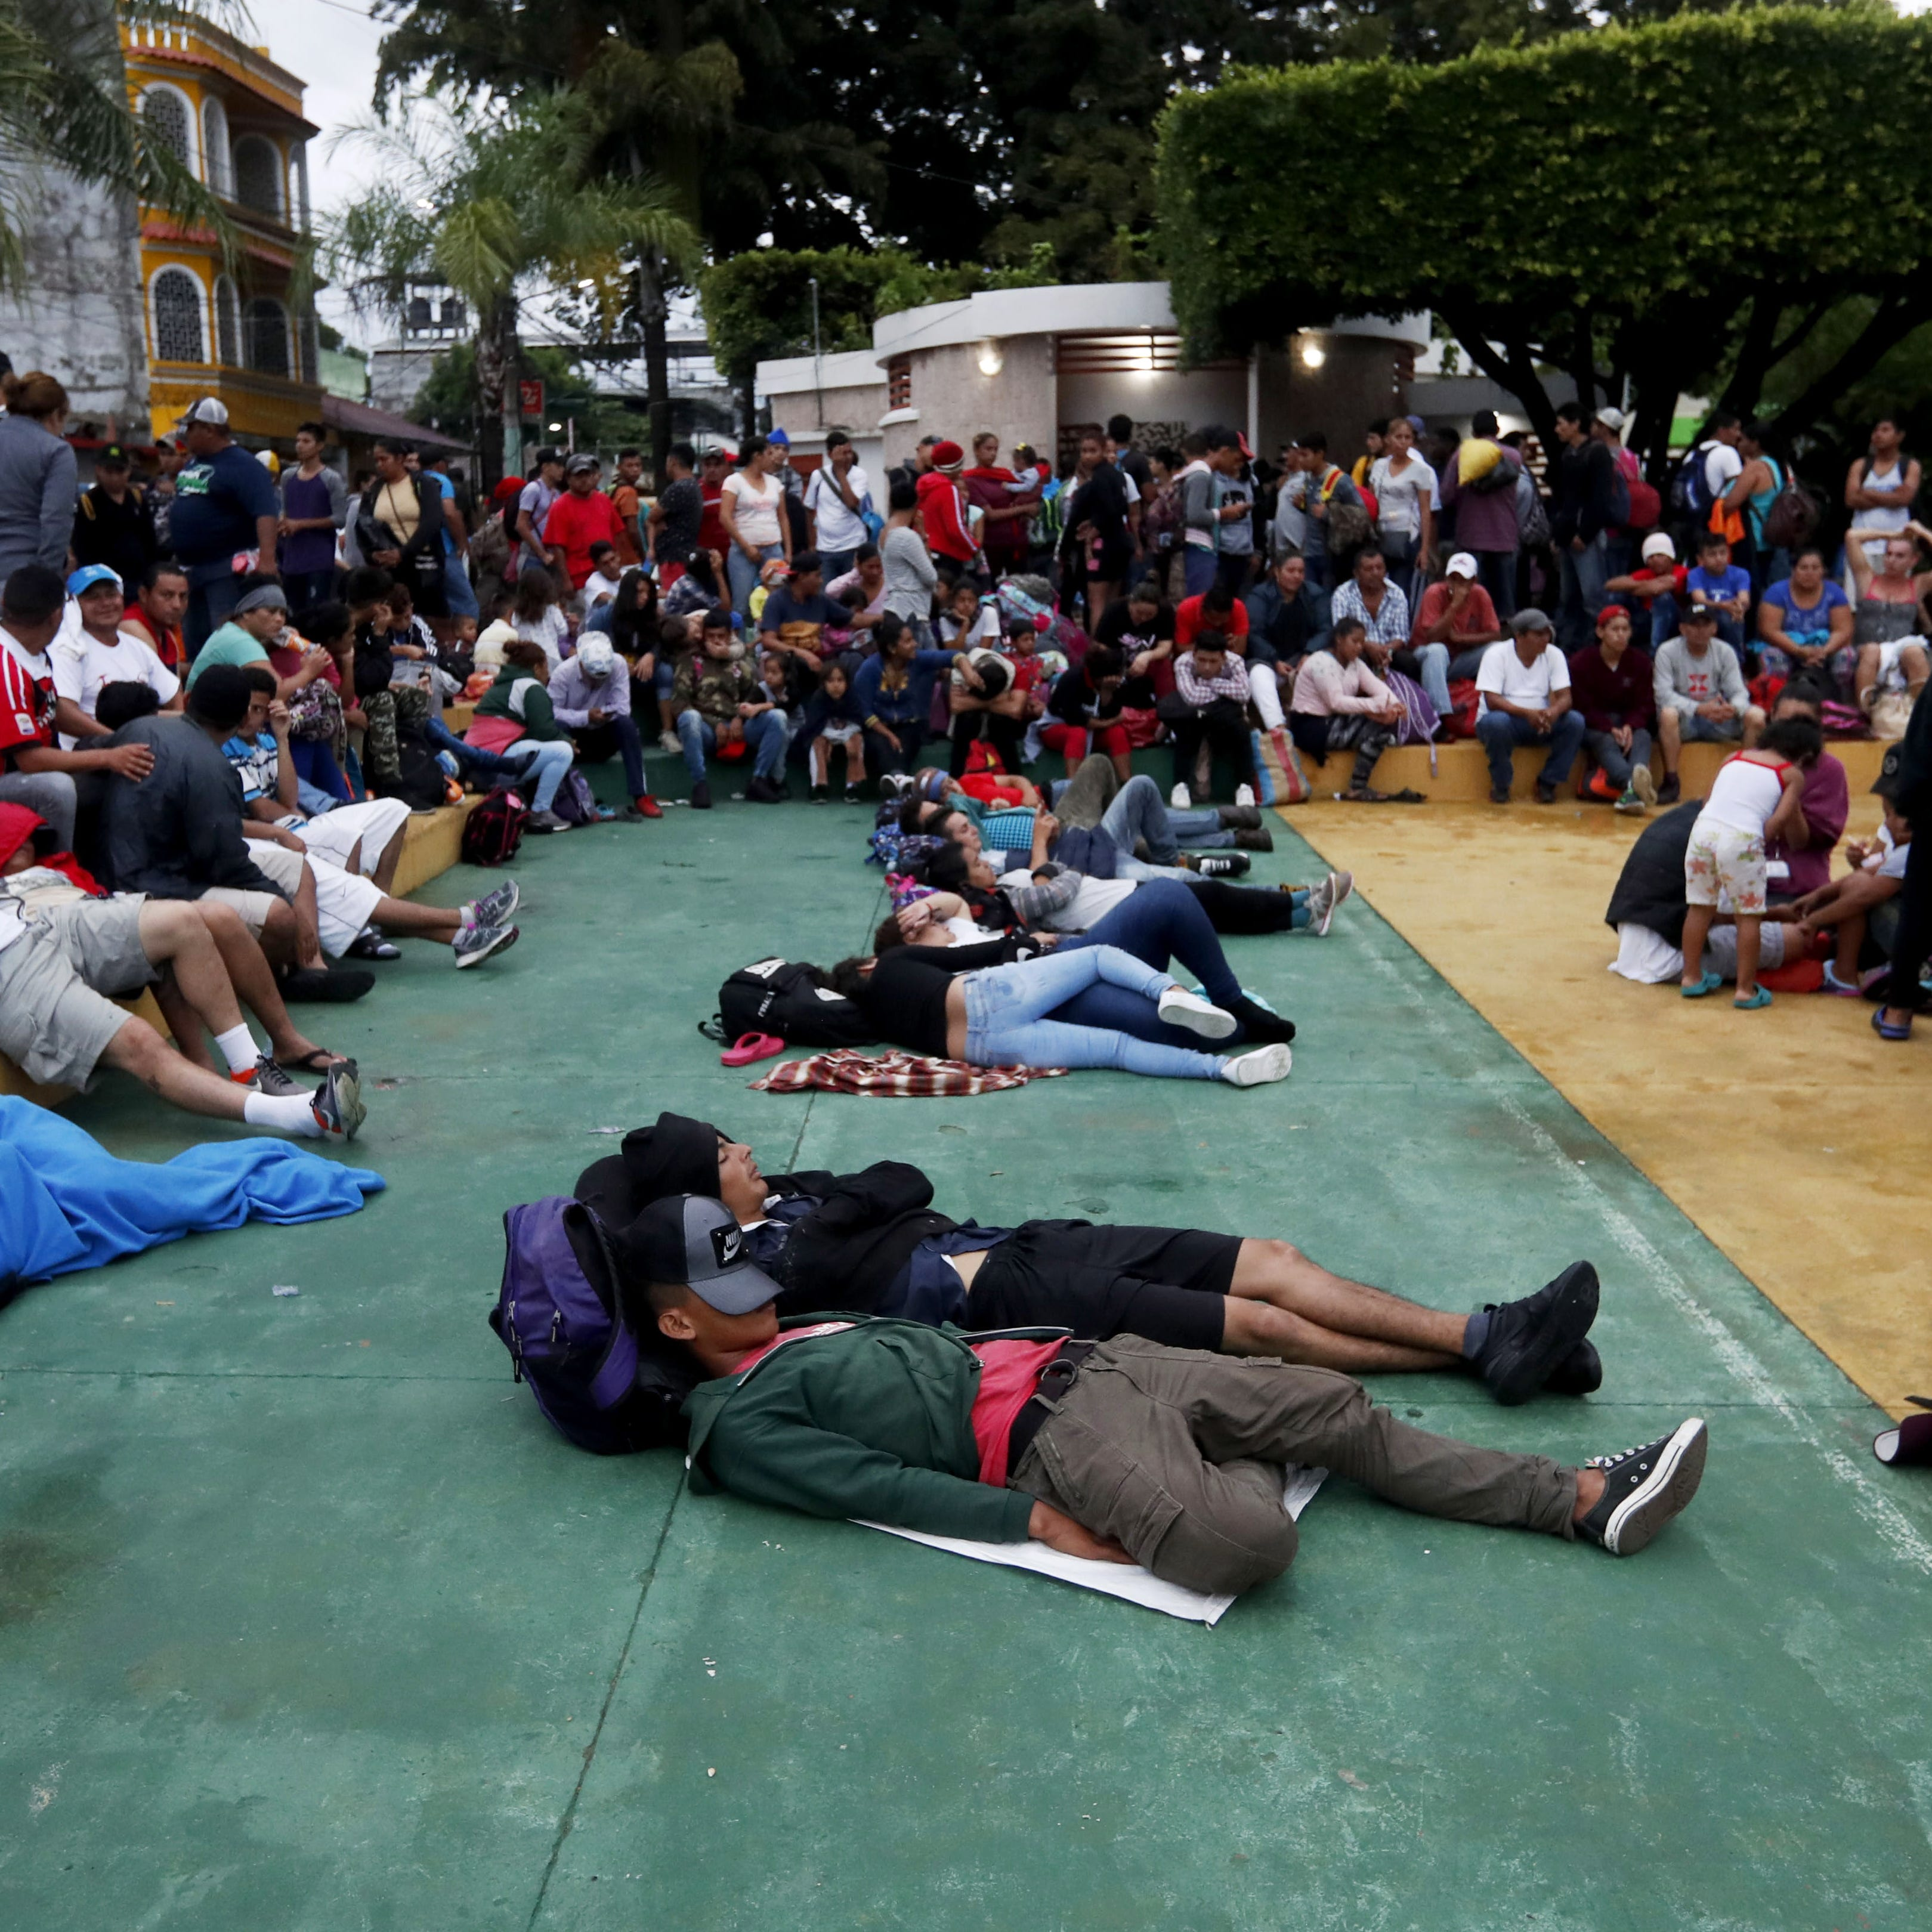 Thousands of caravan migrants stopped at Guatemalan border clash with police